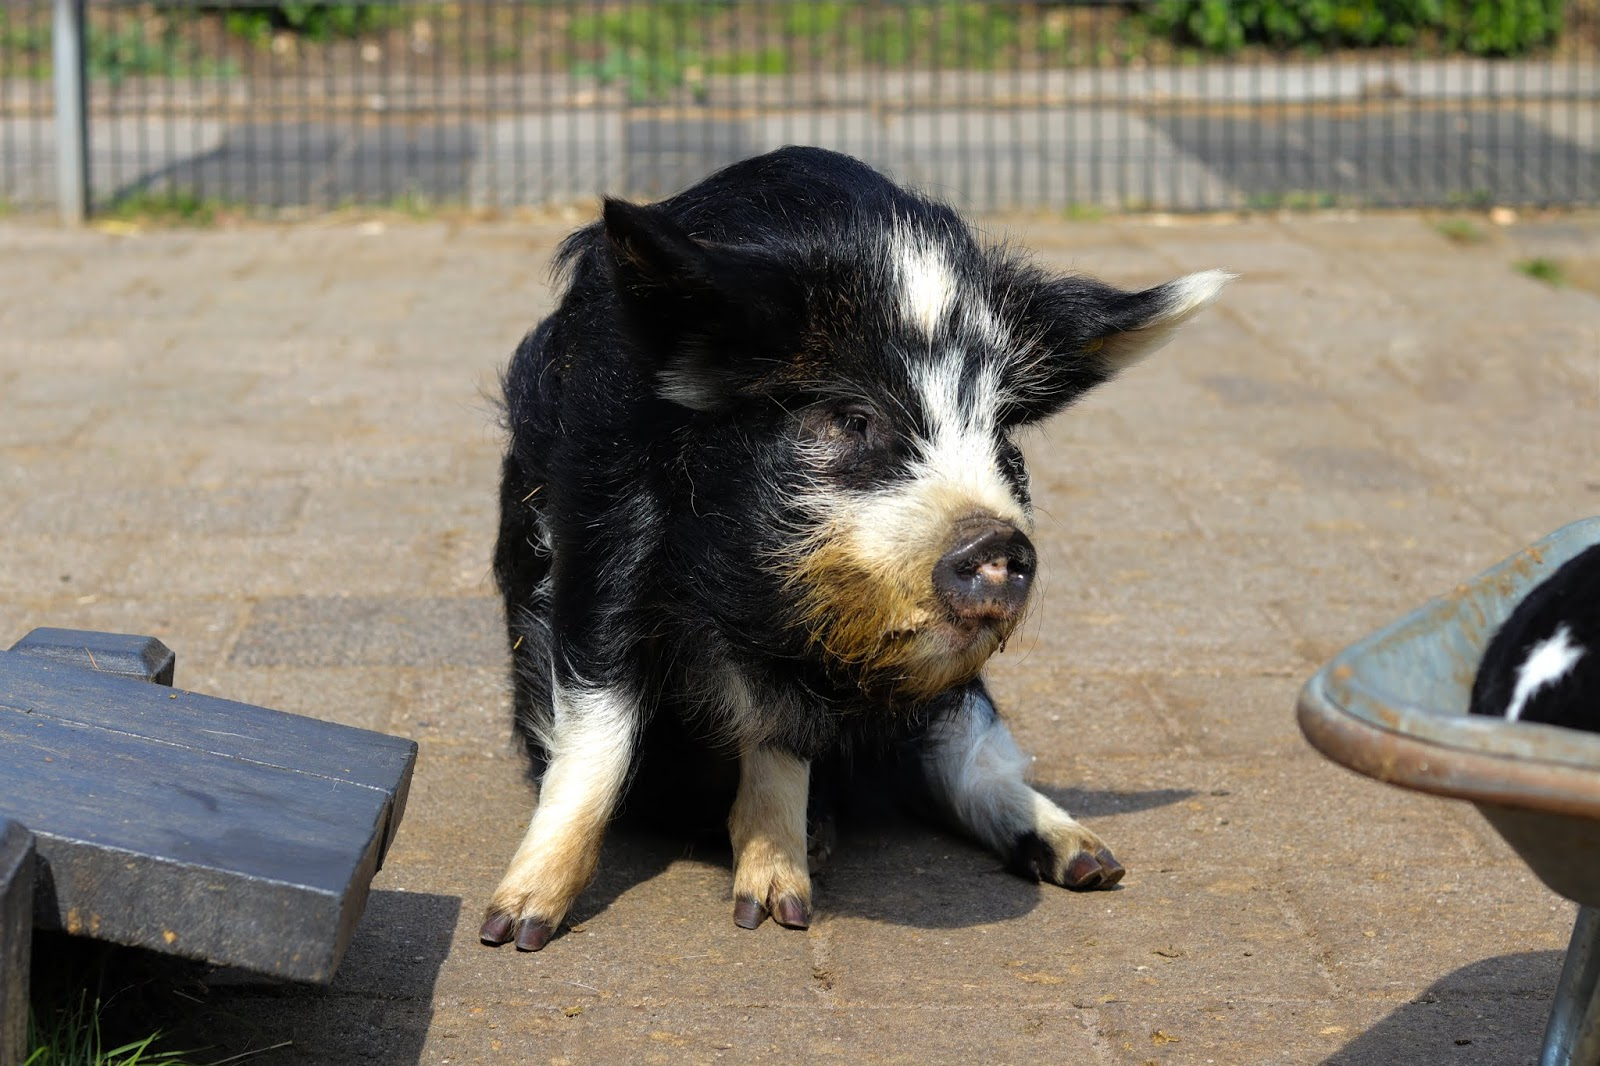 A farm pig posing for a photo